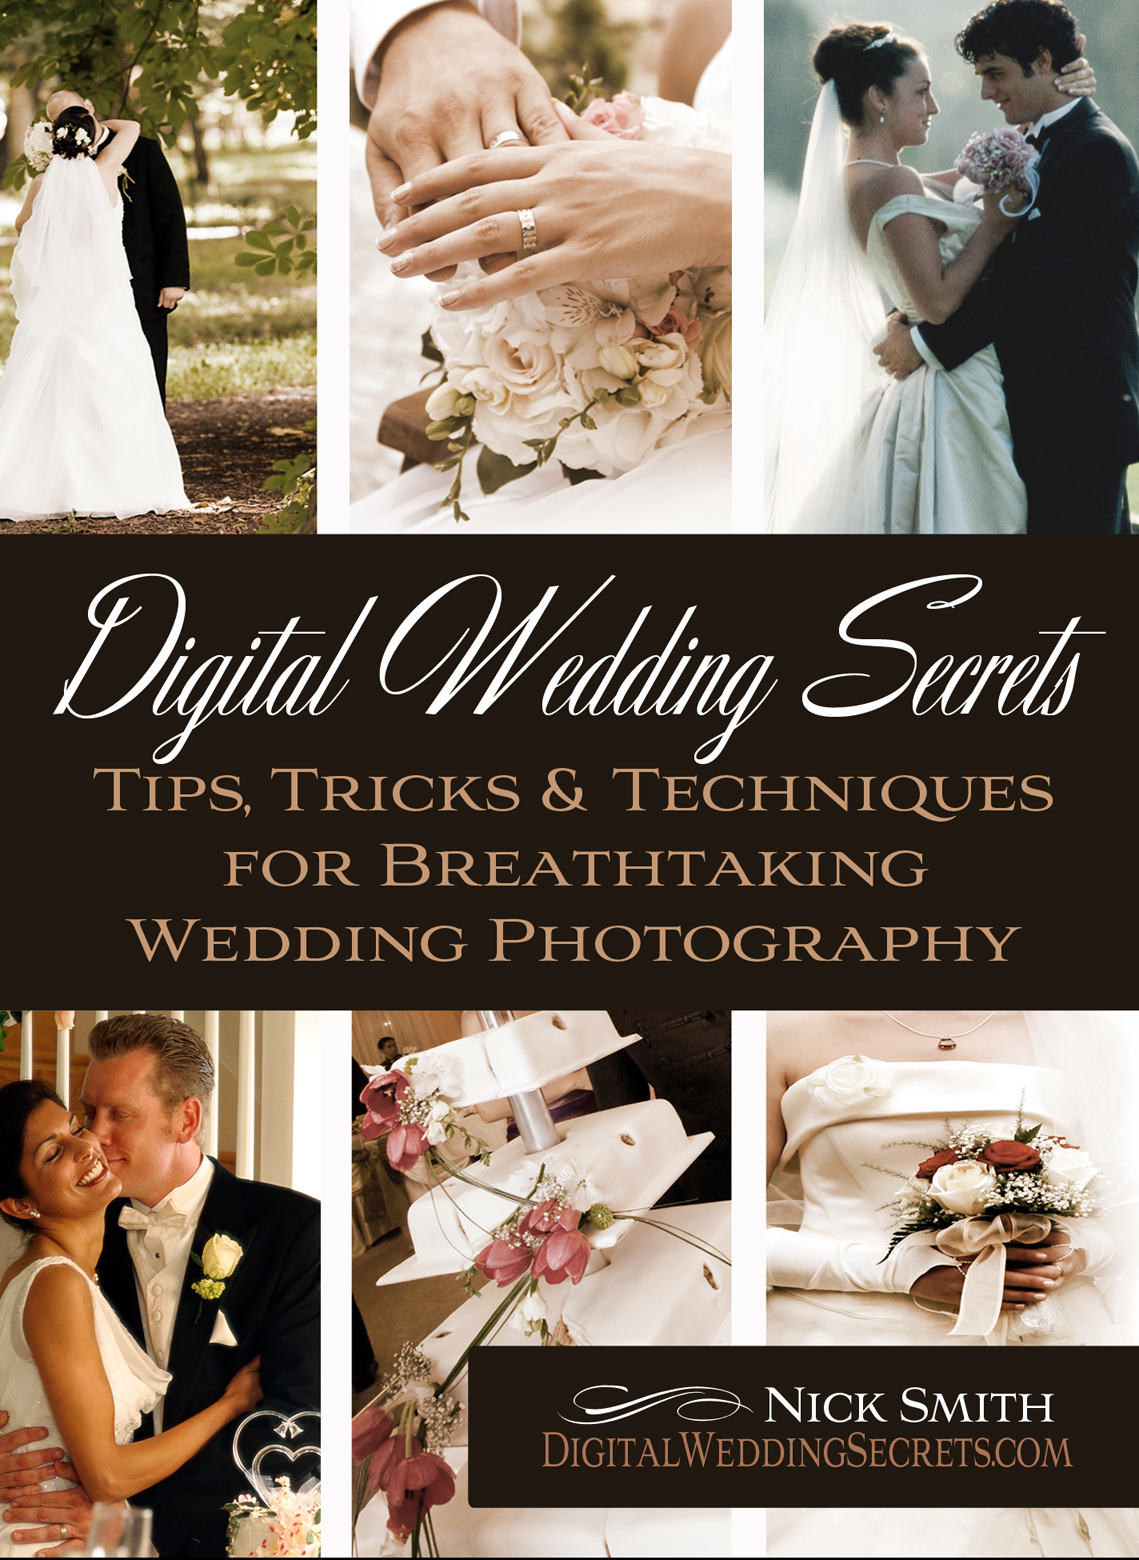 digital wedding secrets review digital wedding secrets can help